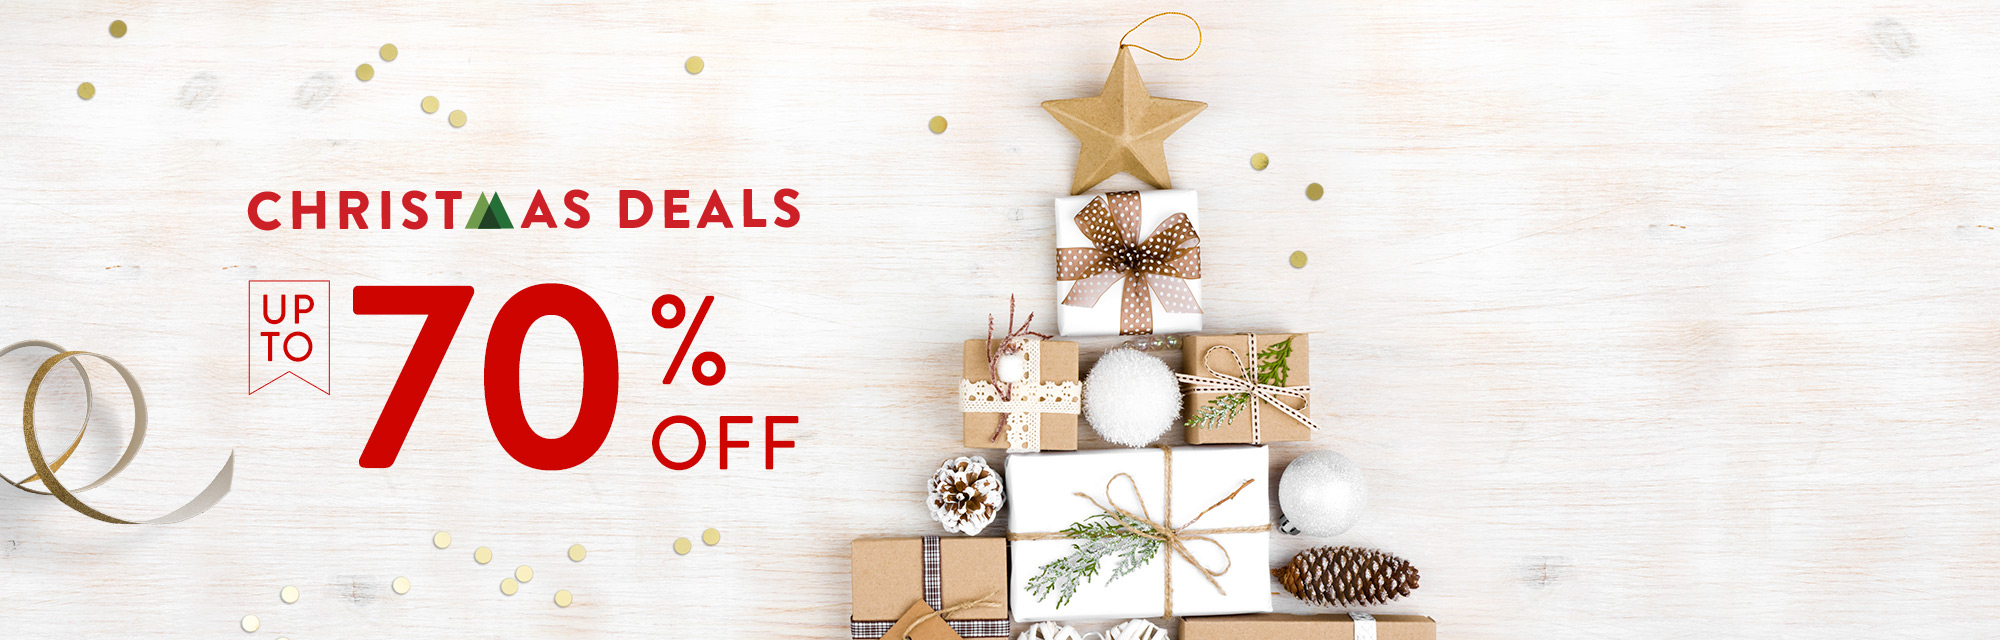 Christmas Deals - Up to 70% off!